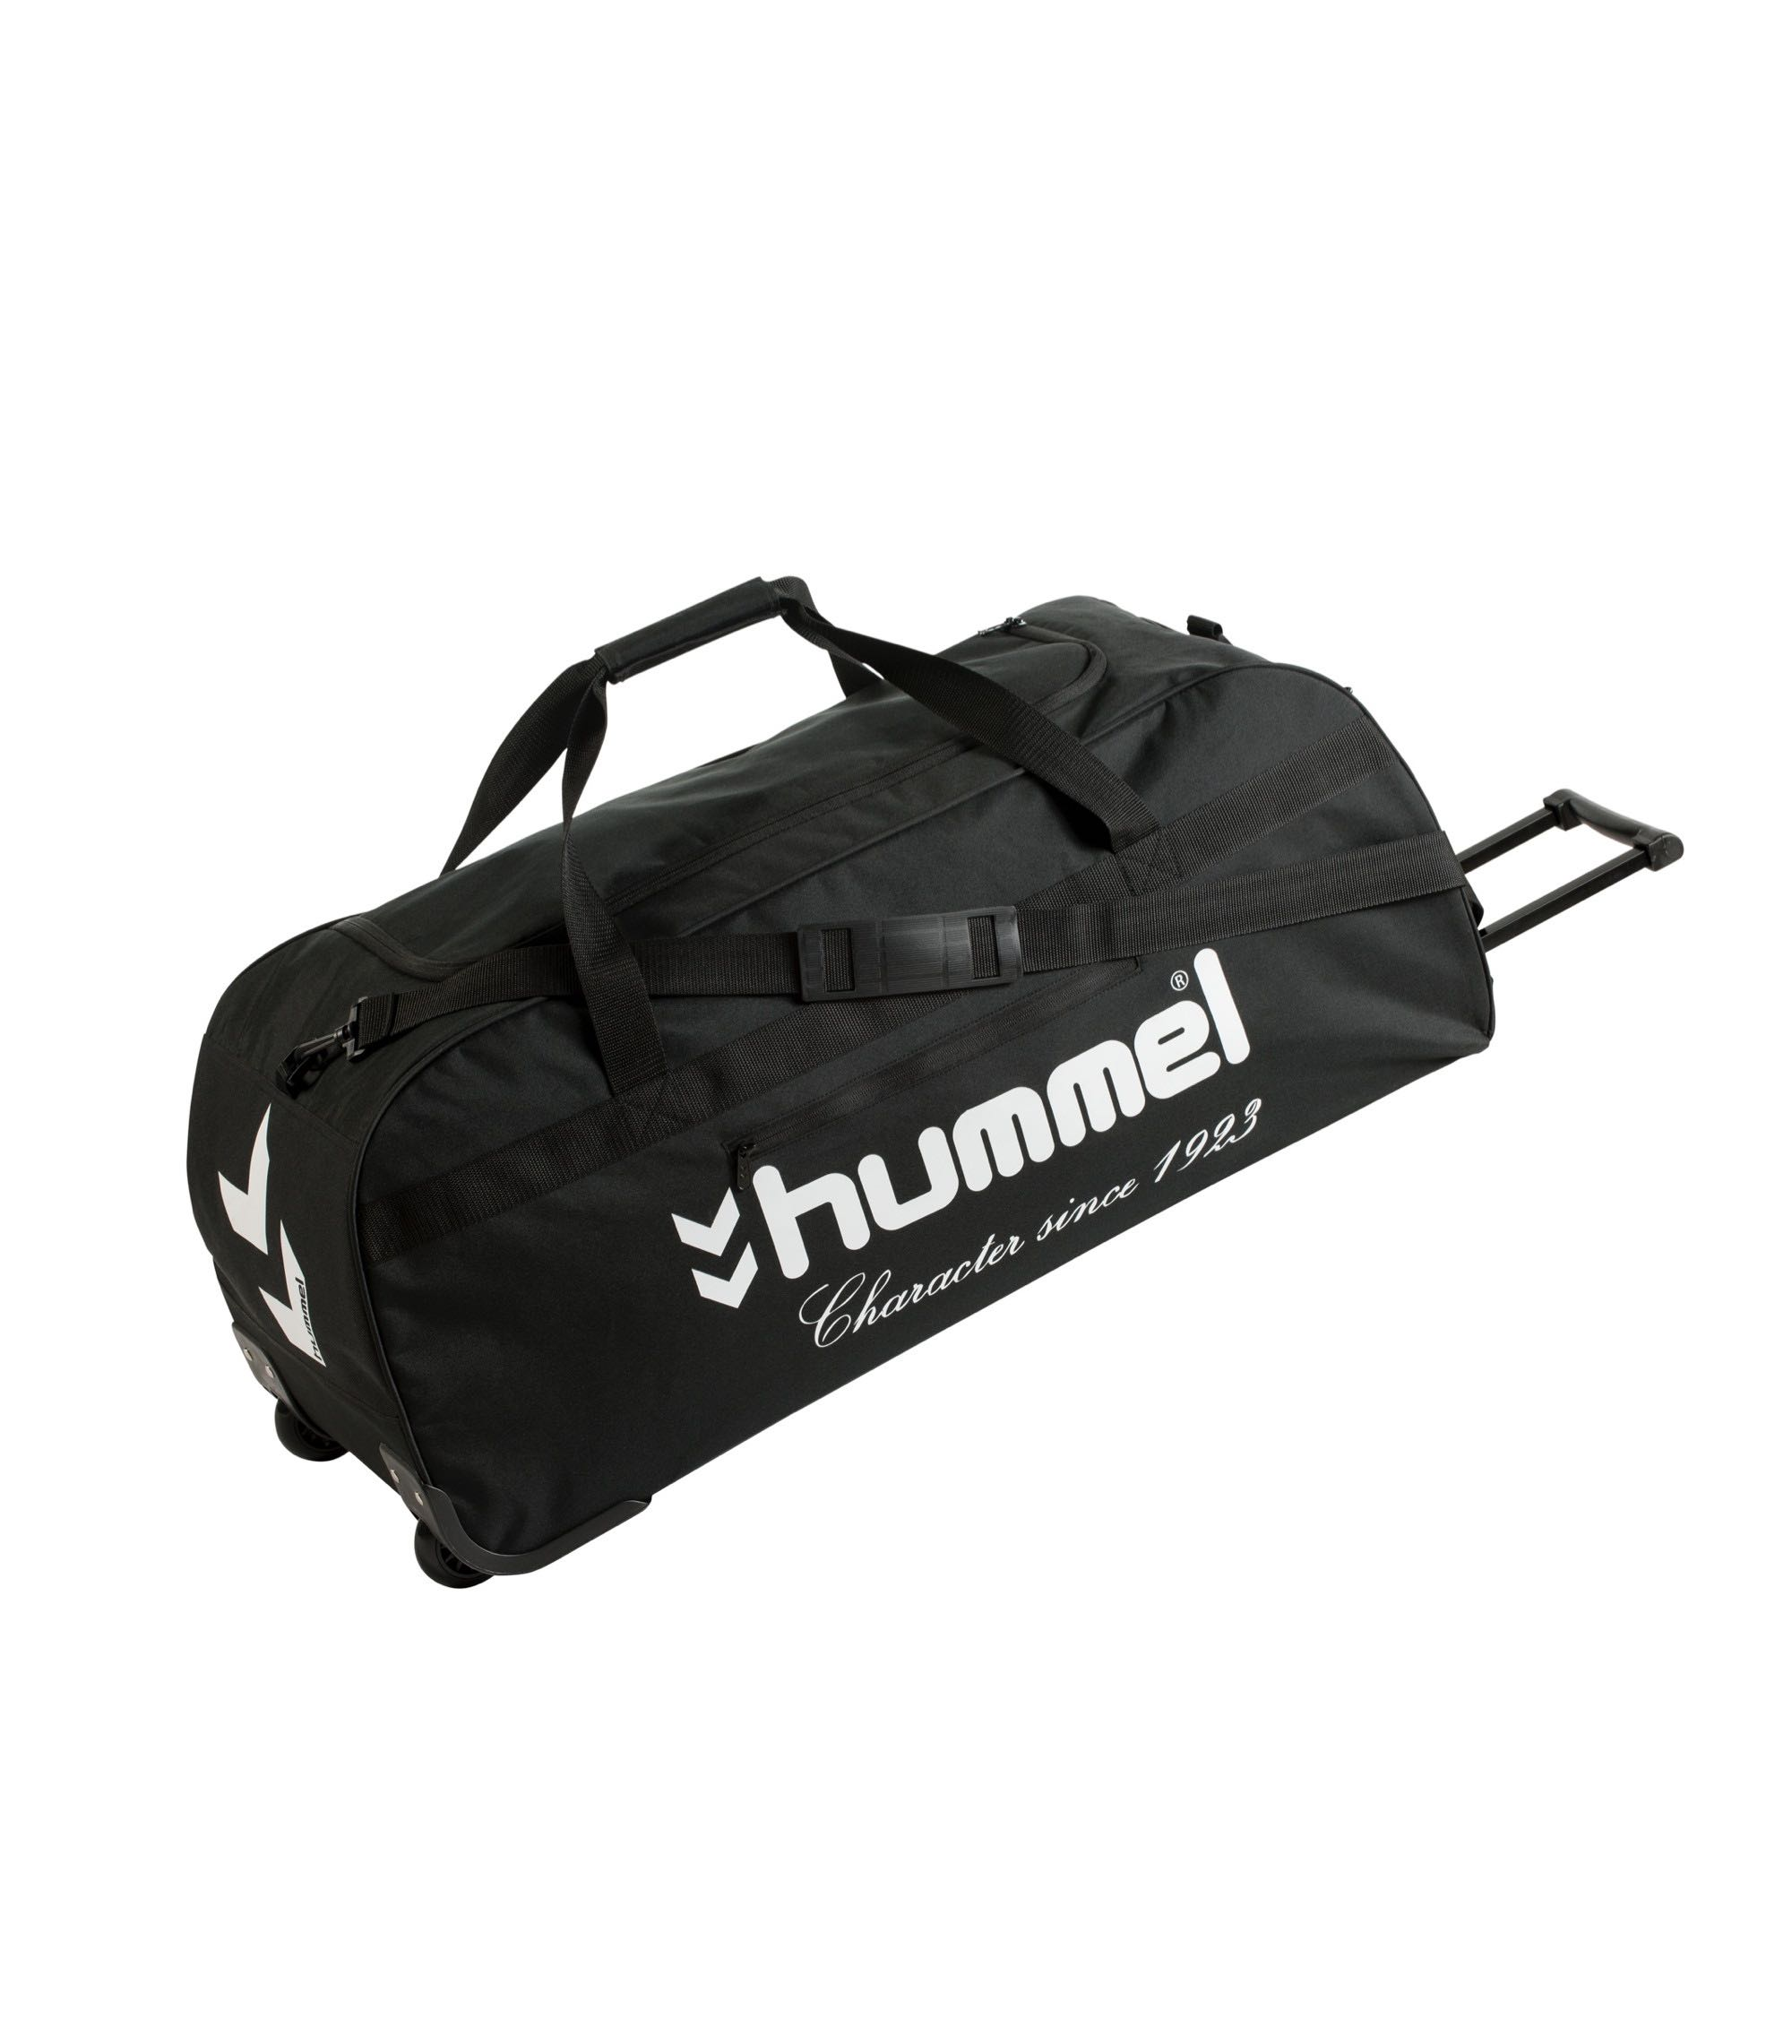 roller-bag-telescopique-hummel-classic-2